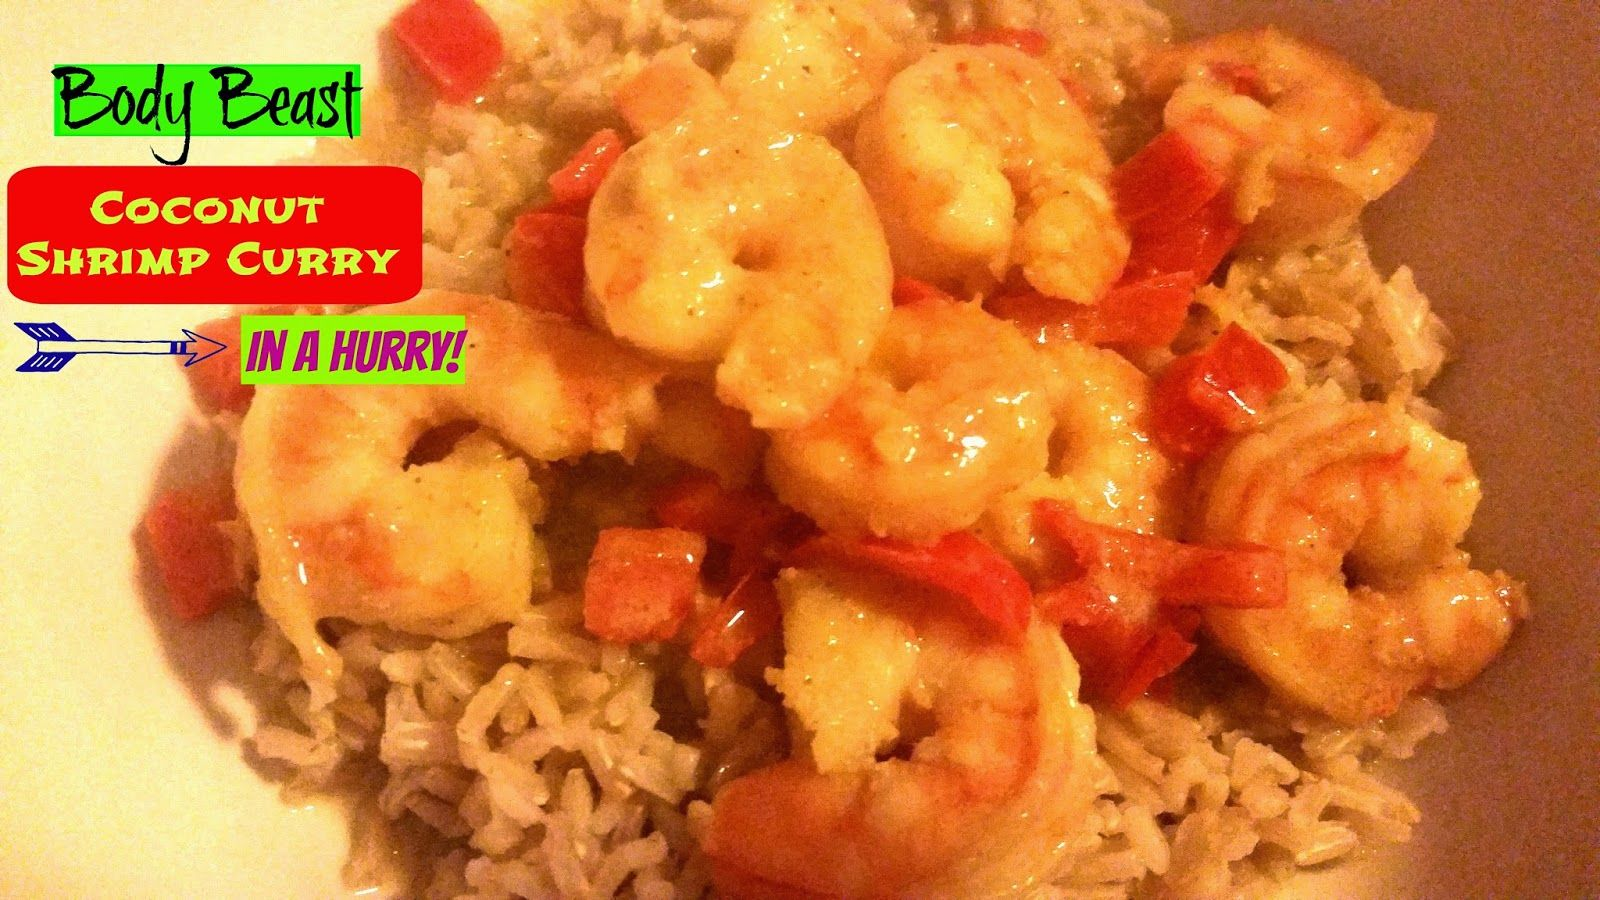 Body Beast Recipe Coconut Shrimp Curry In A Hurry With